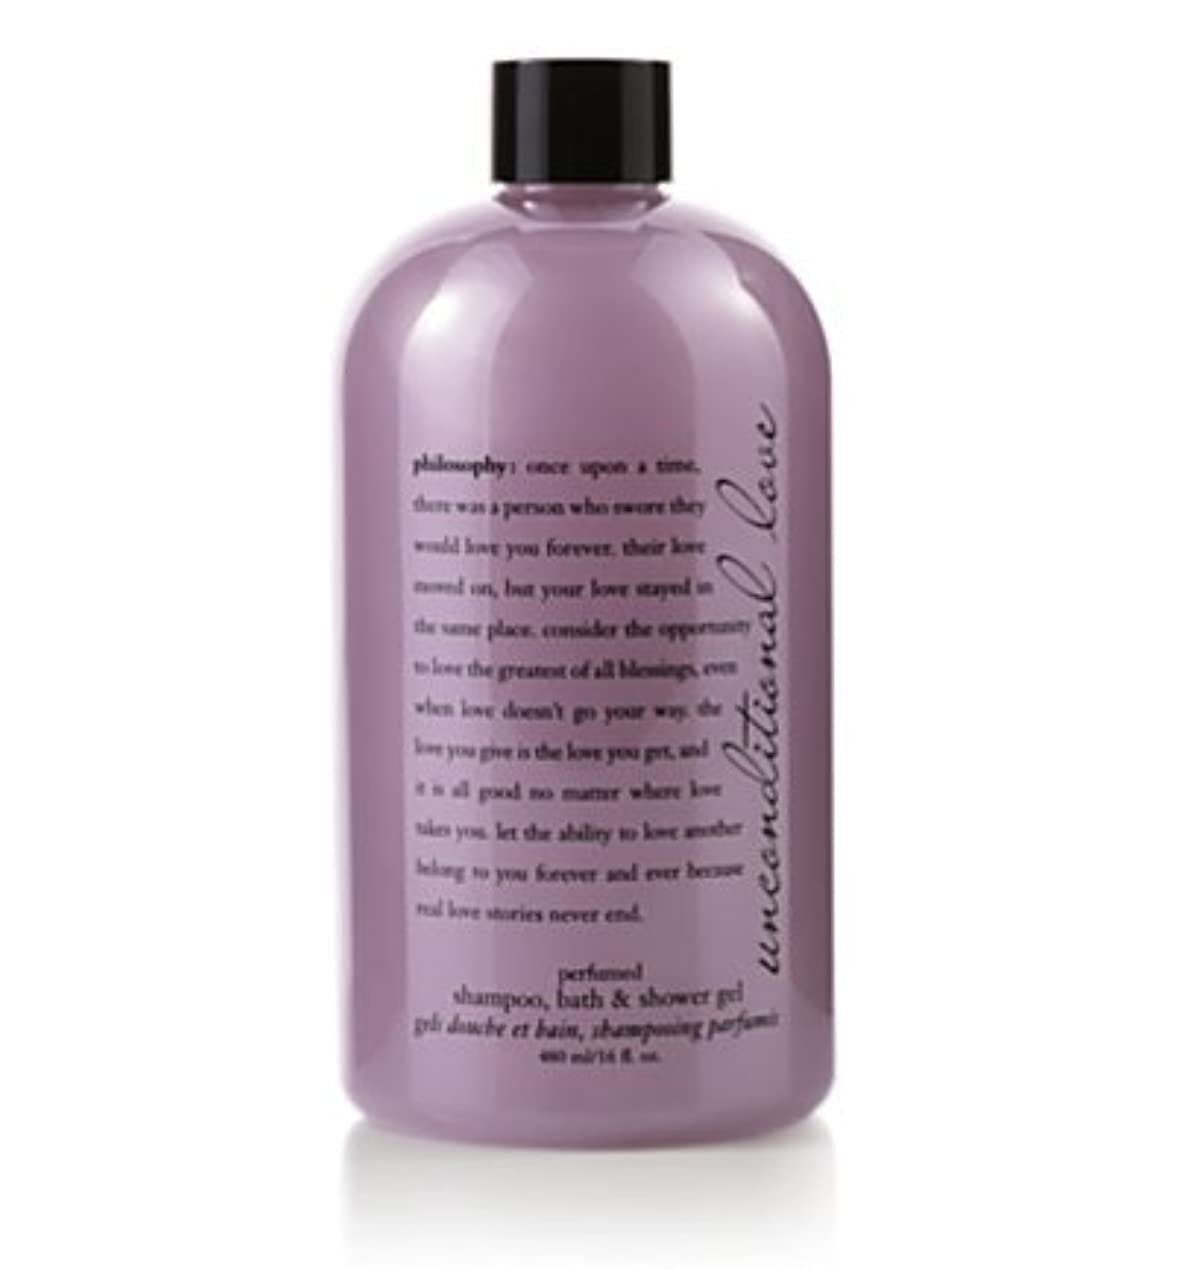 考案するナプキン垂直unconditional love (アンコンディショナルラブ ) 16.0 oz (480ml) perfumed shampoo, bath & shower gel for Women